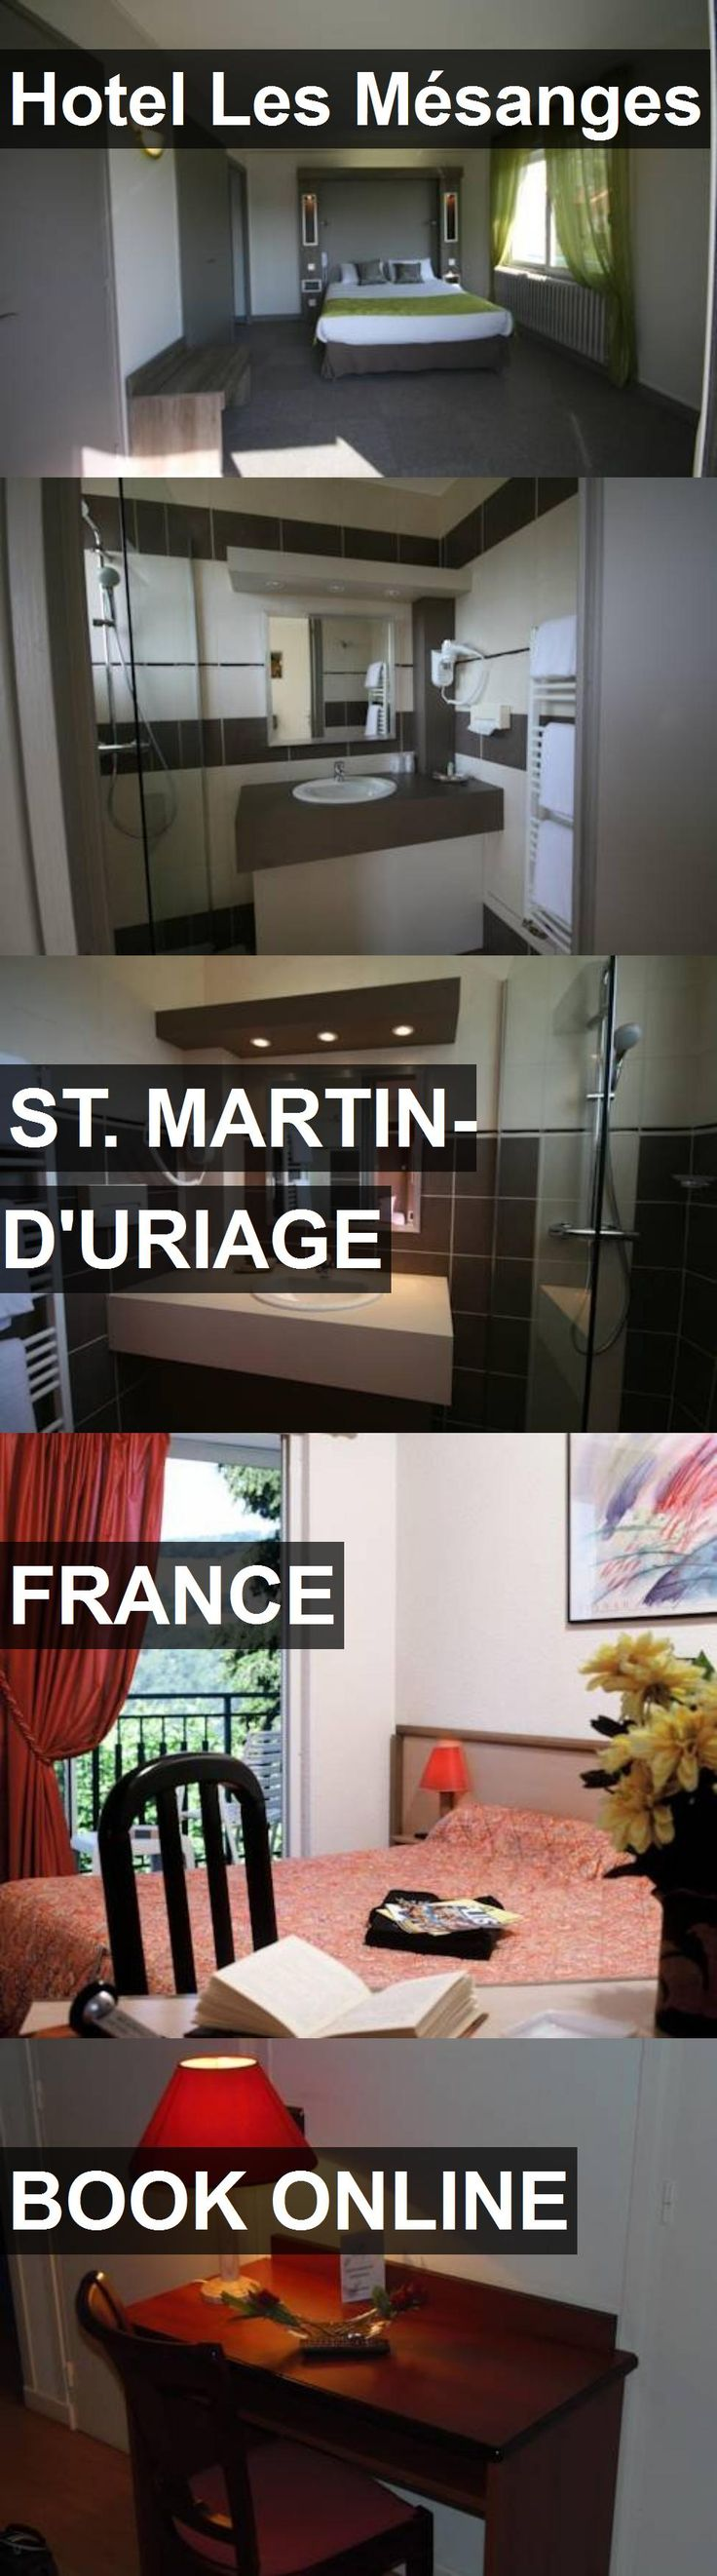 Hotel Hotel Les Mésanges in St. Martin-d'Uriage, France. For more information, photos, reviews and best prices please follow the link. #France #St.Martin-d'Uriage #HotelLesMésanges #hotel #travel #vacation